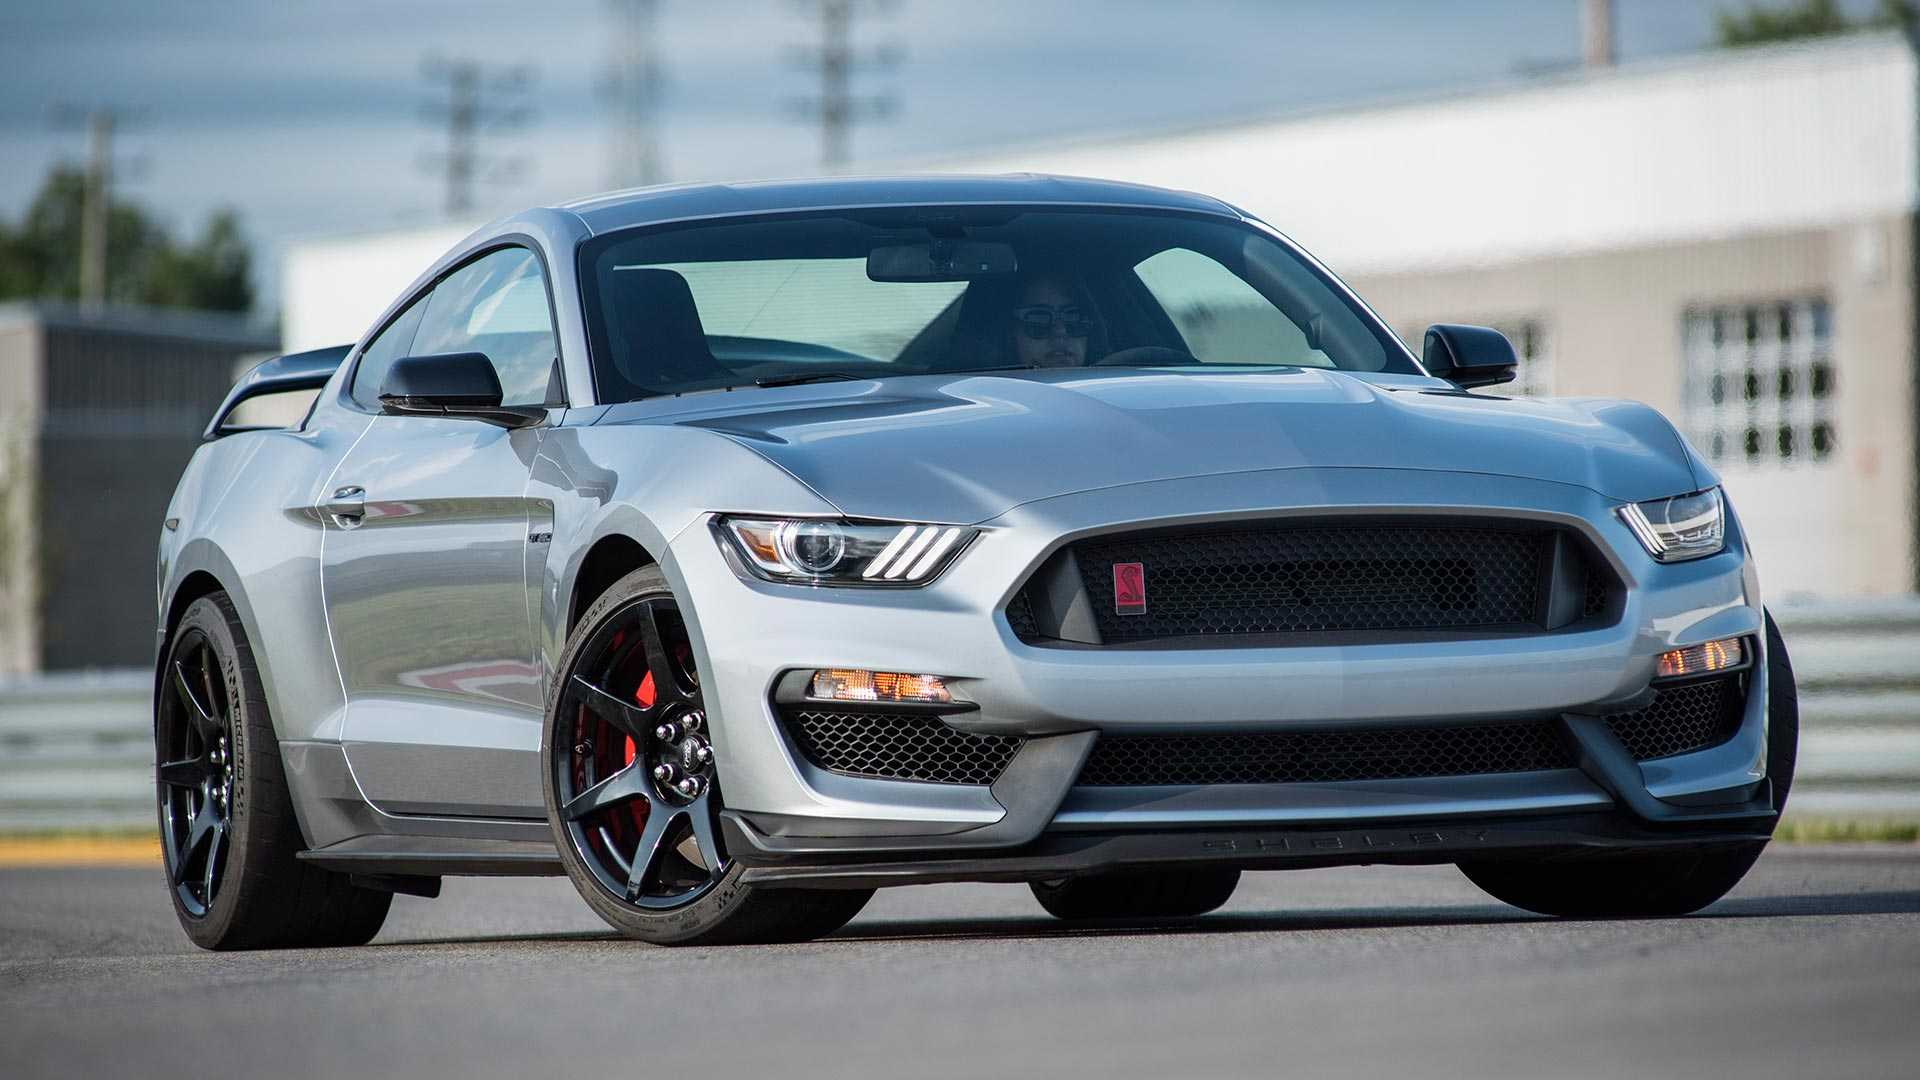 2020 Ford Mustang Gt Review.2020 Ford Mustang Shelby Gt350r First Drive Don T Be